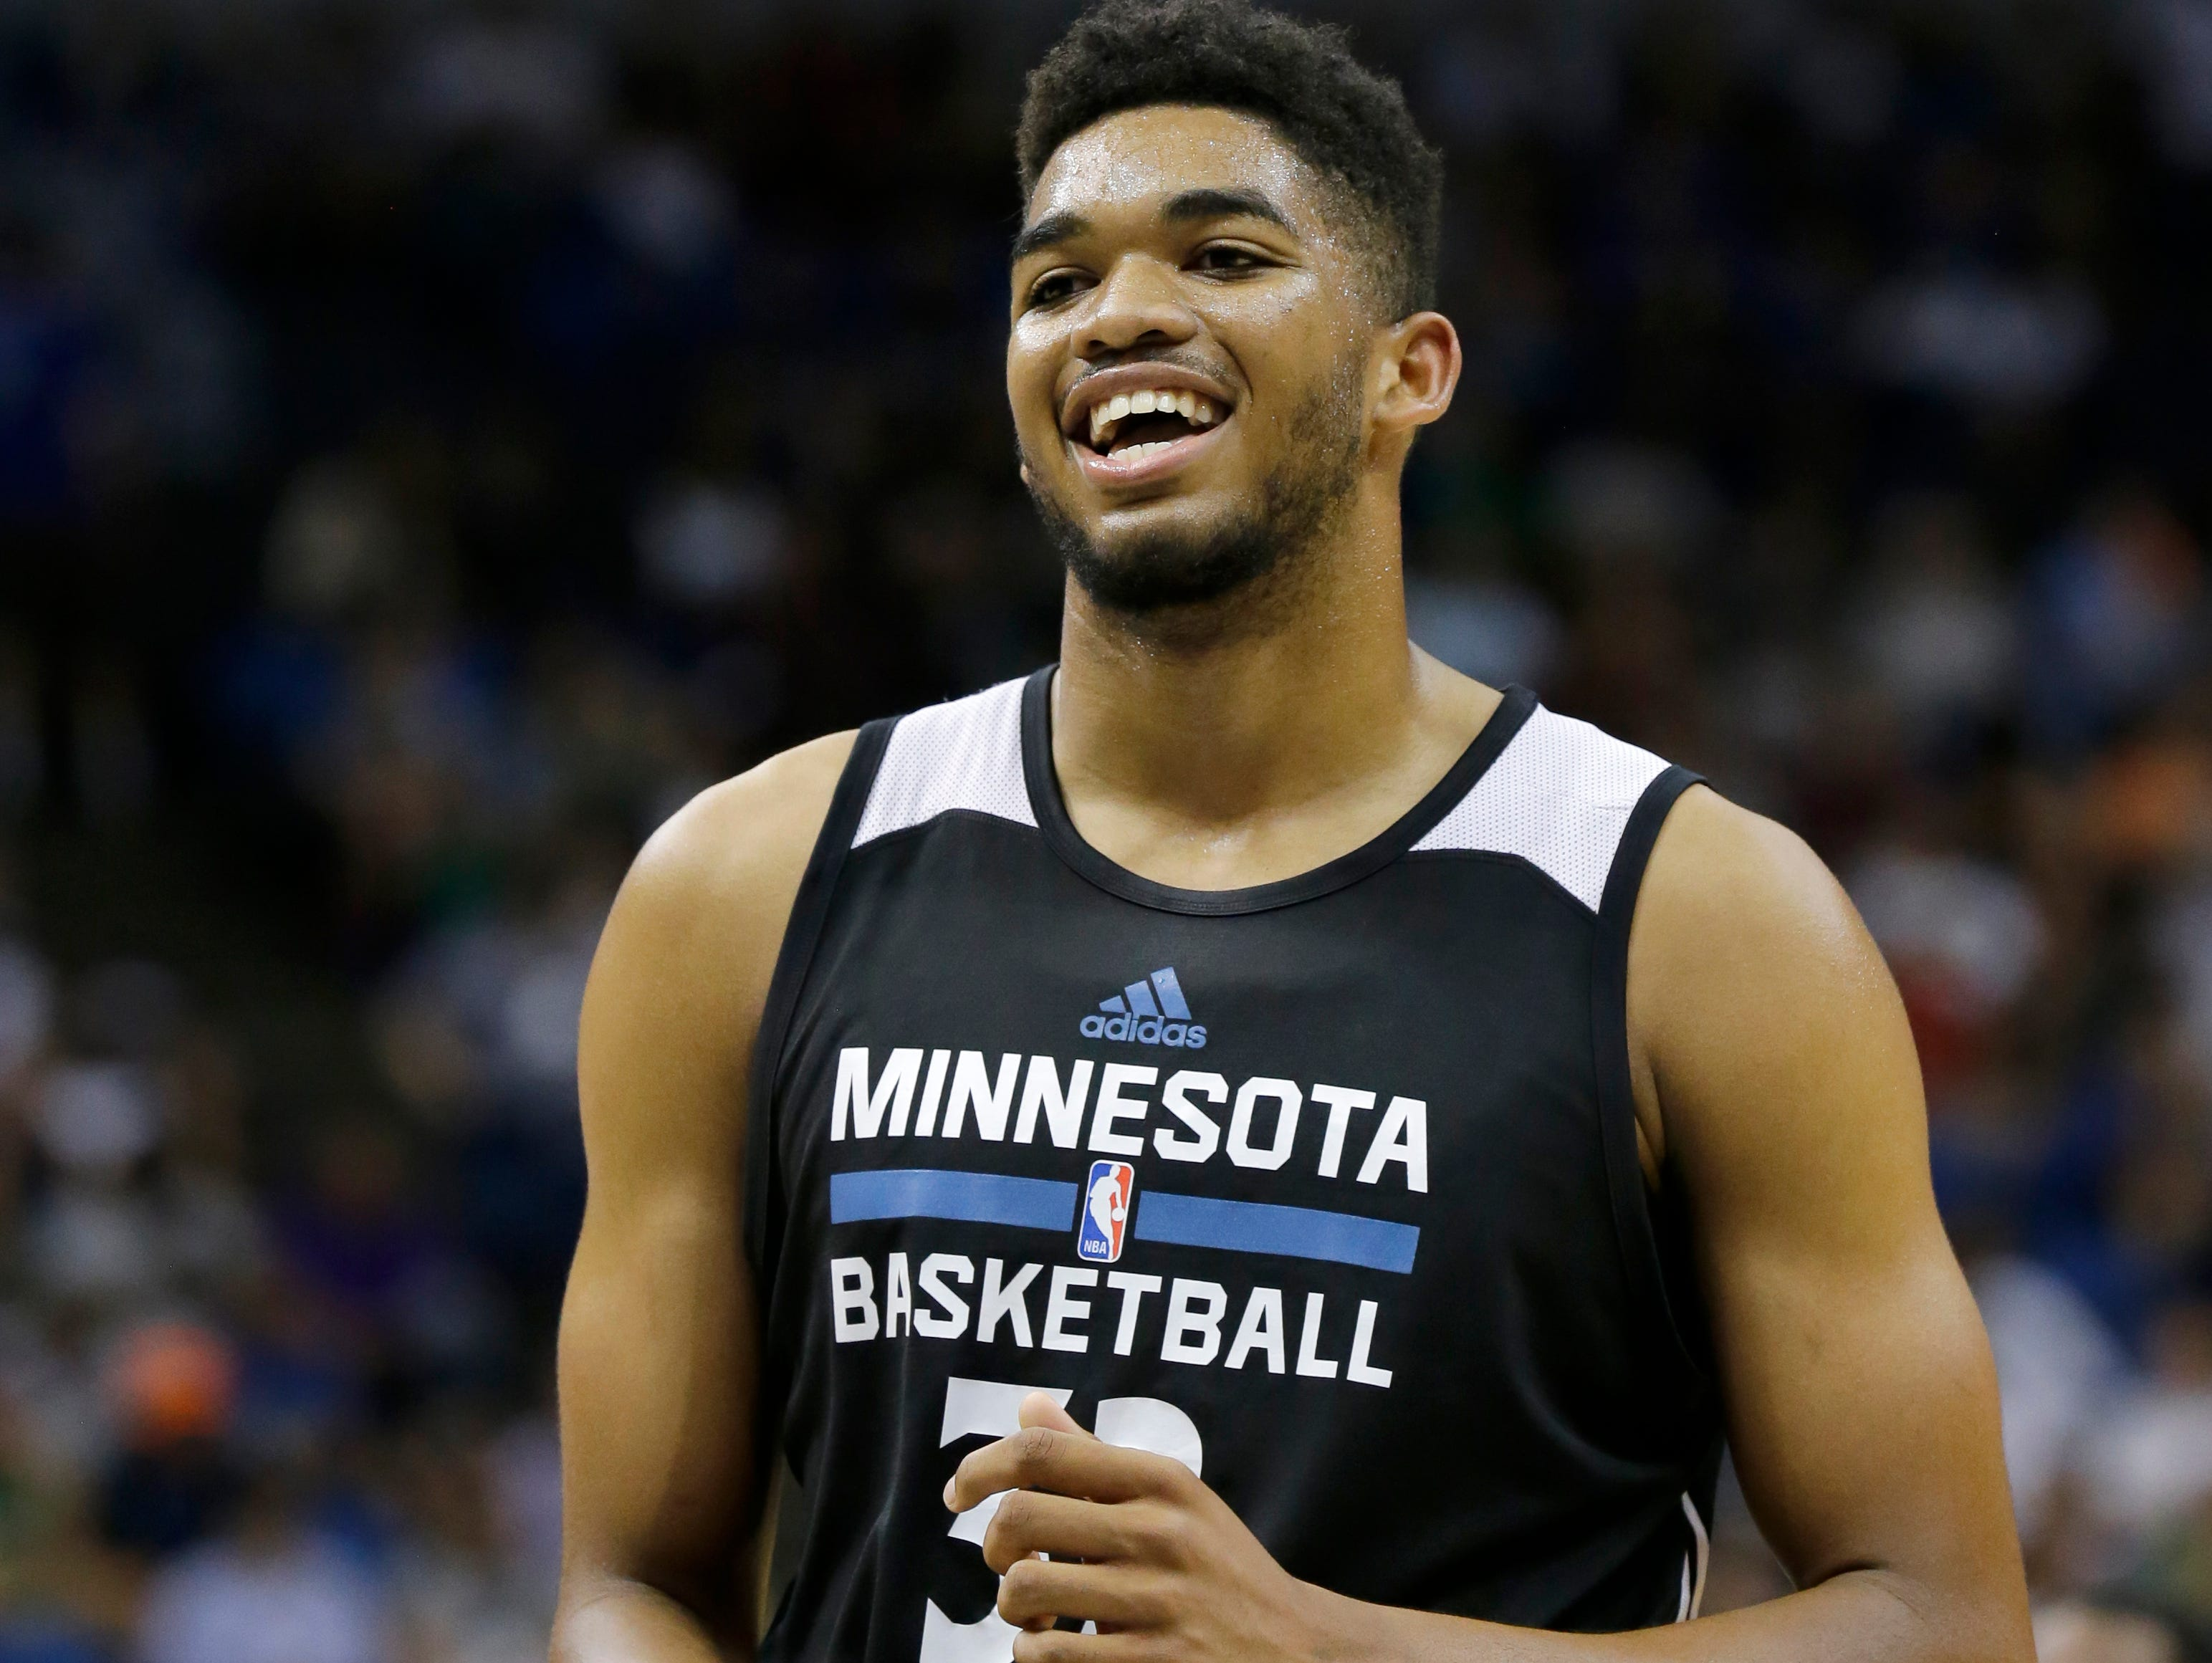 Minnesota Timberwolves center Karl-Anthony Towns laughs at a teammate during an NBA basketball scrimmage in Minneapolis, Wednesday, July 8, 2015. (AP Photo/Ann Heisenfelt)